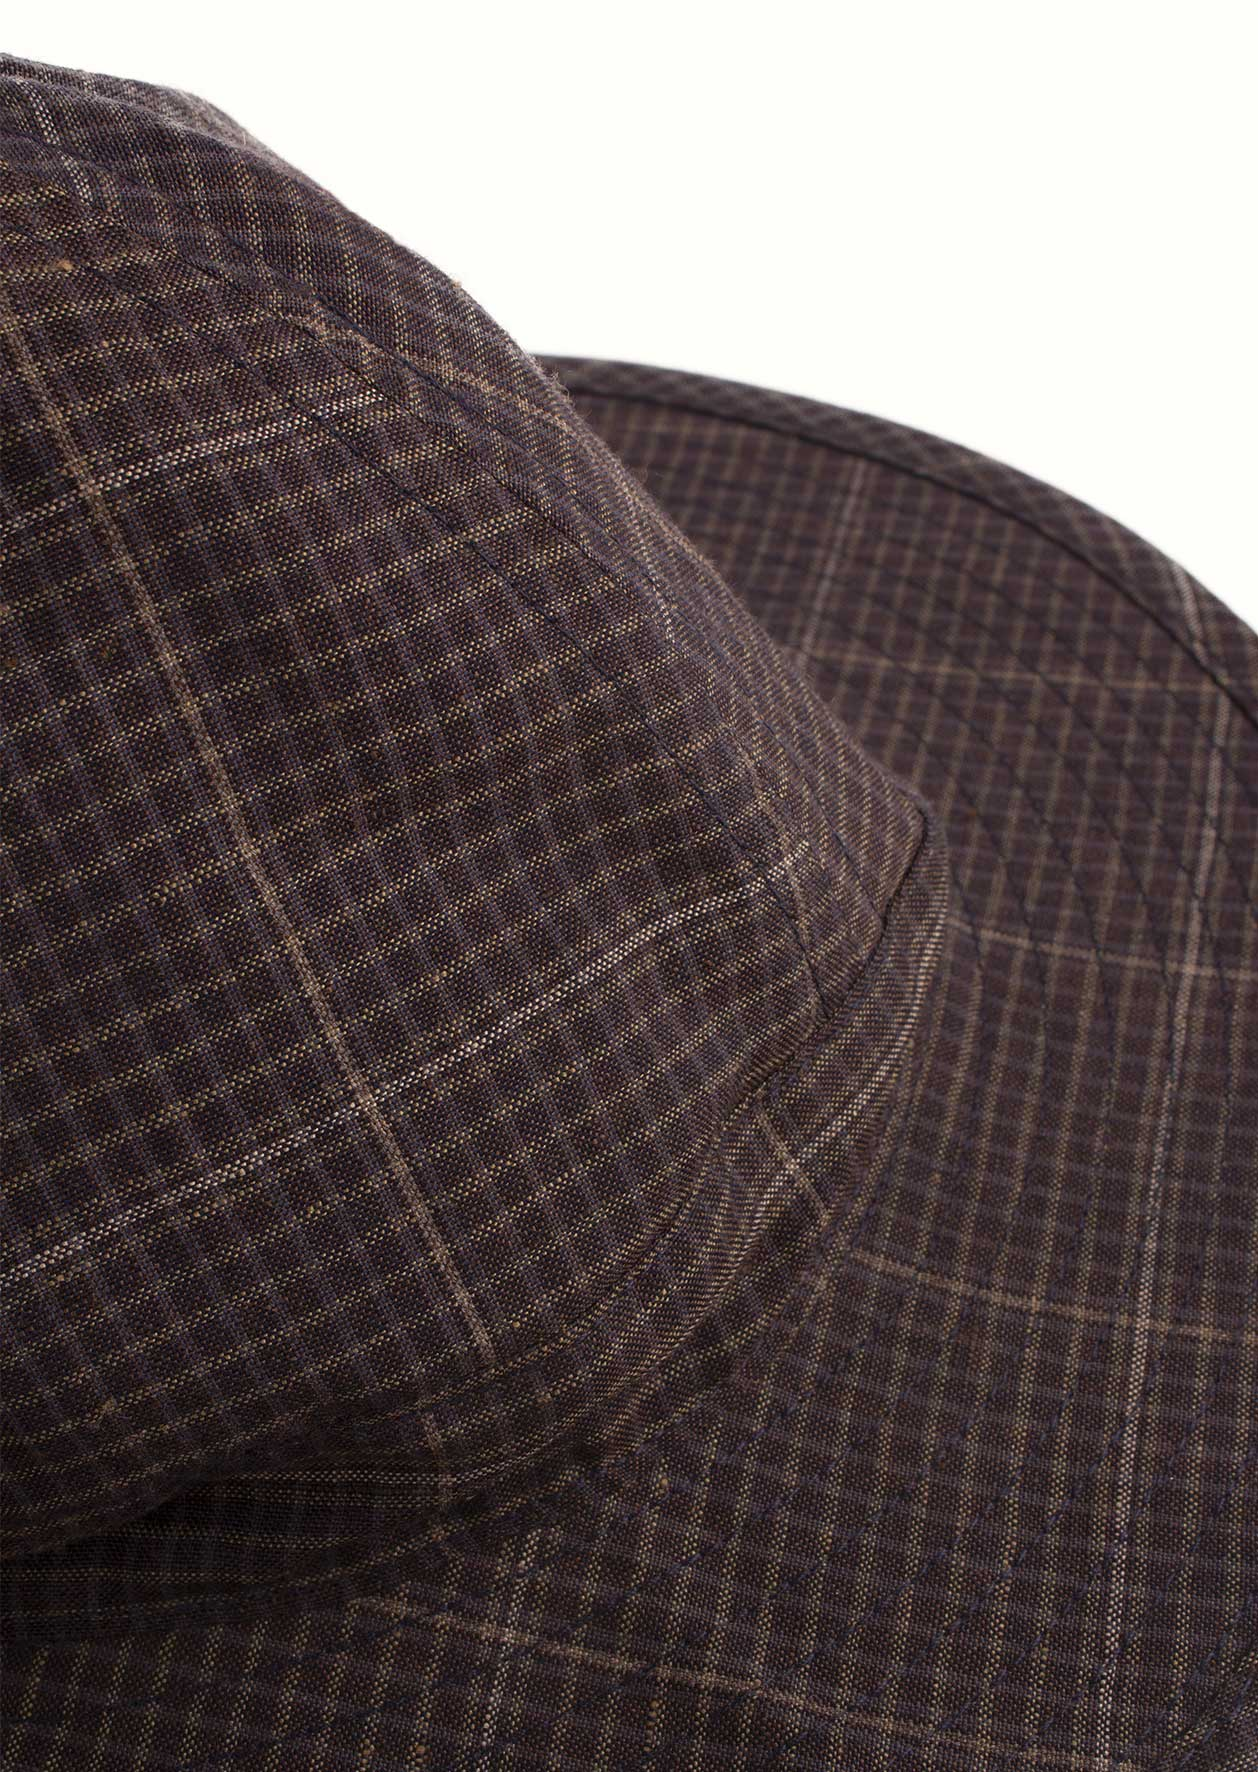 De Bonne Facture - Bob hat - Washed wool & linen - Dark brown checks